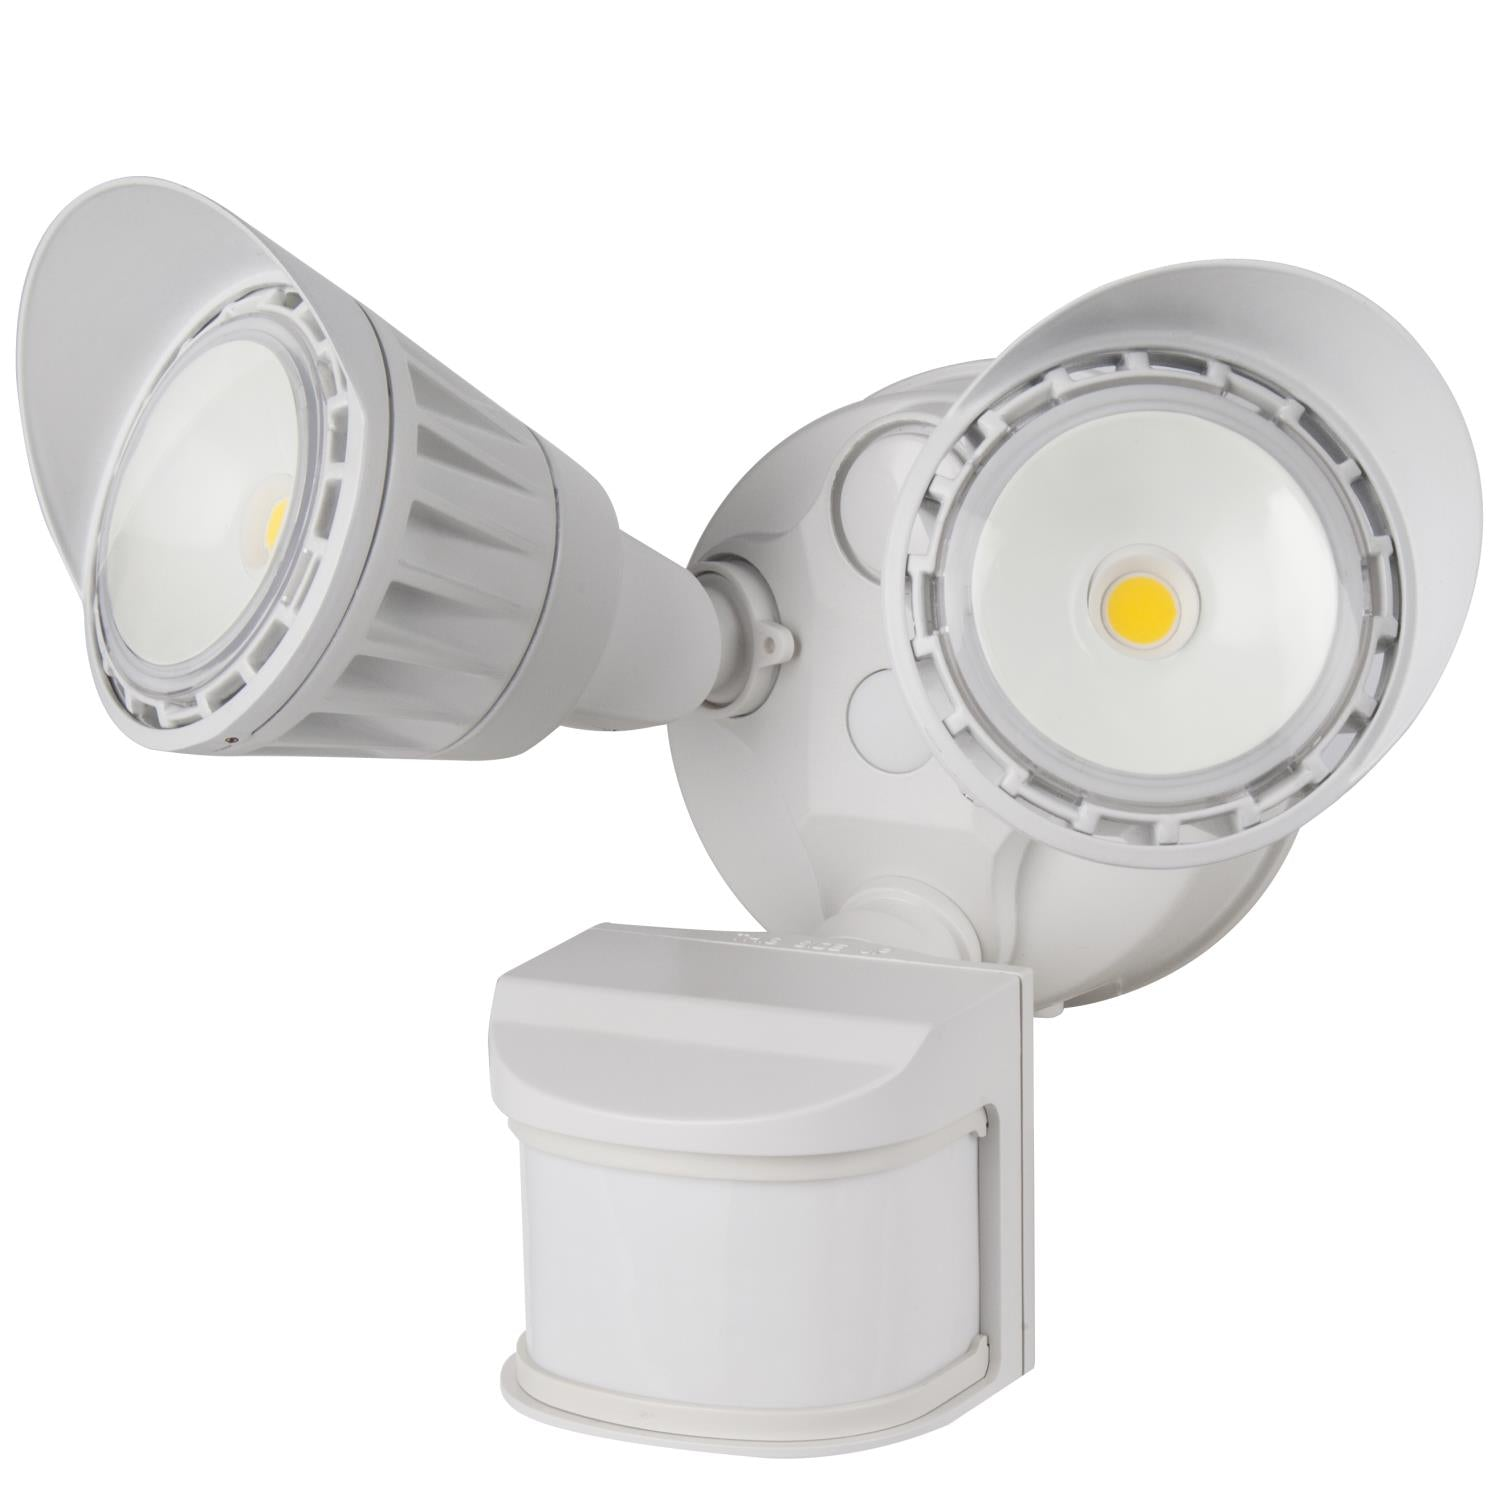 SUNLITE 20W LED Dual Head Security Light with Motion Sensor and Photocell White 3000K Warm White